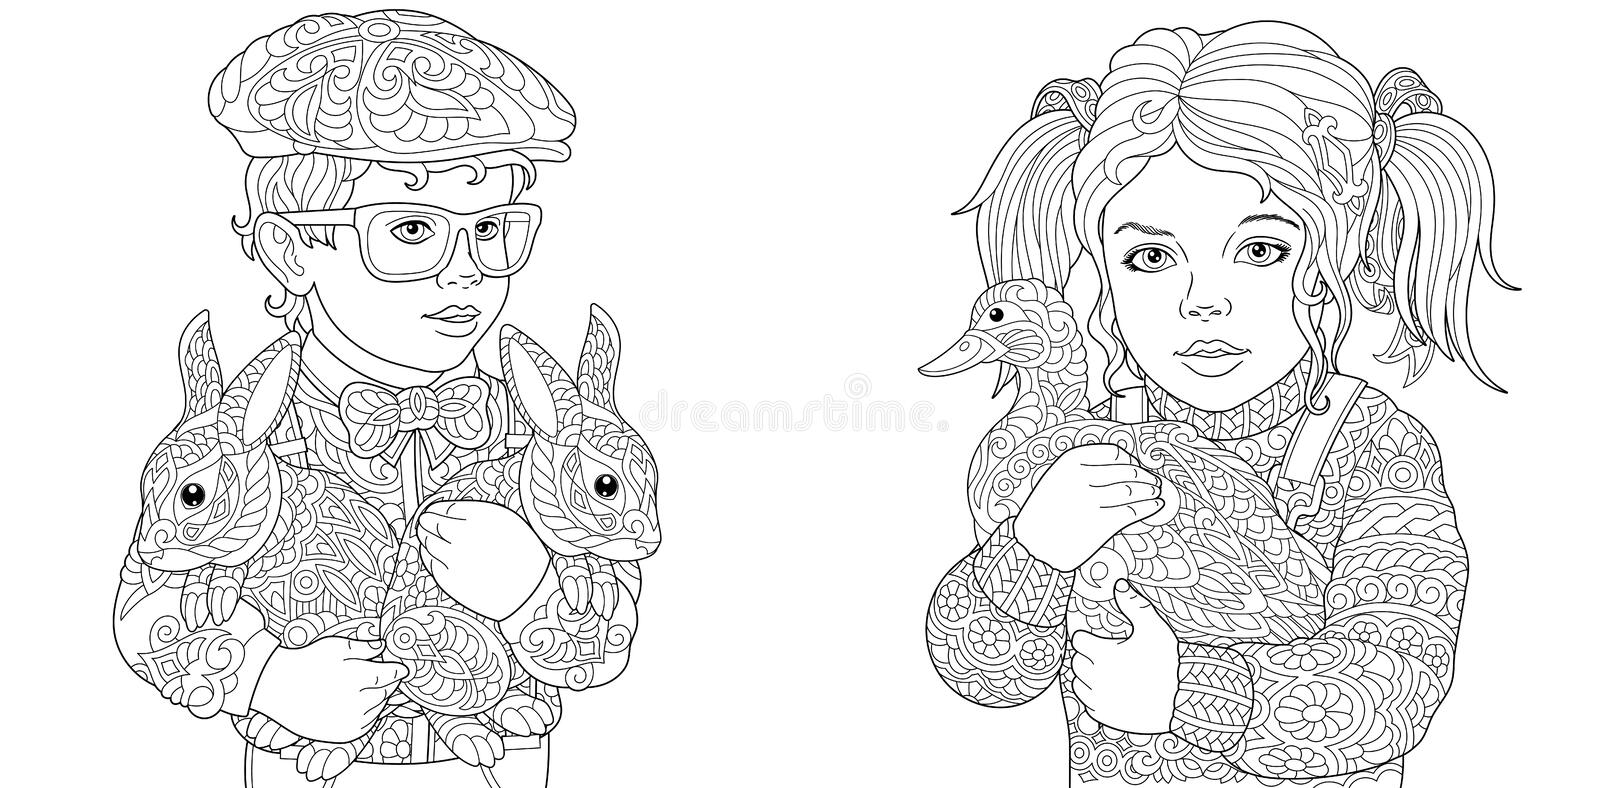 Boy And Girl Coloring Pages - Coloring Home | 394x800